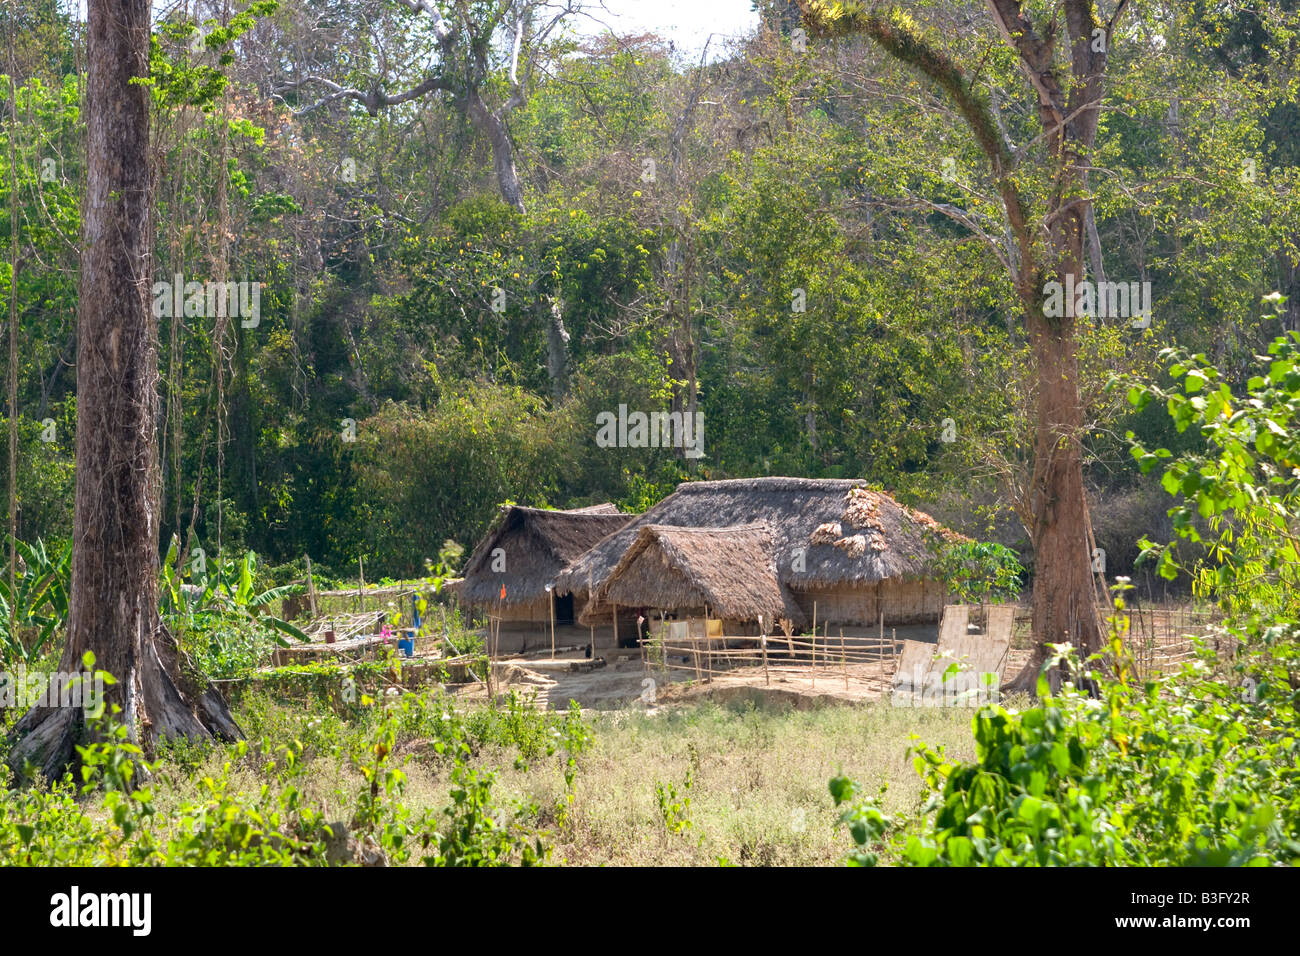 farmhouse in the forest andaman india - Stock Image